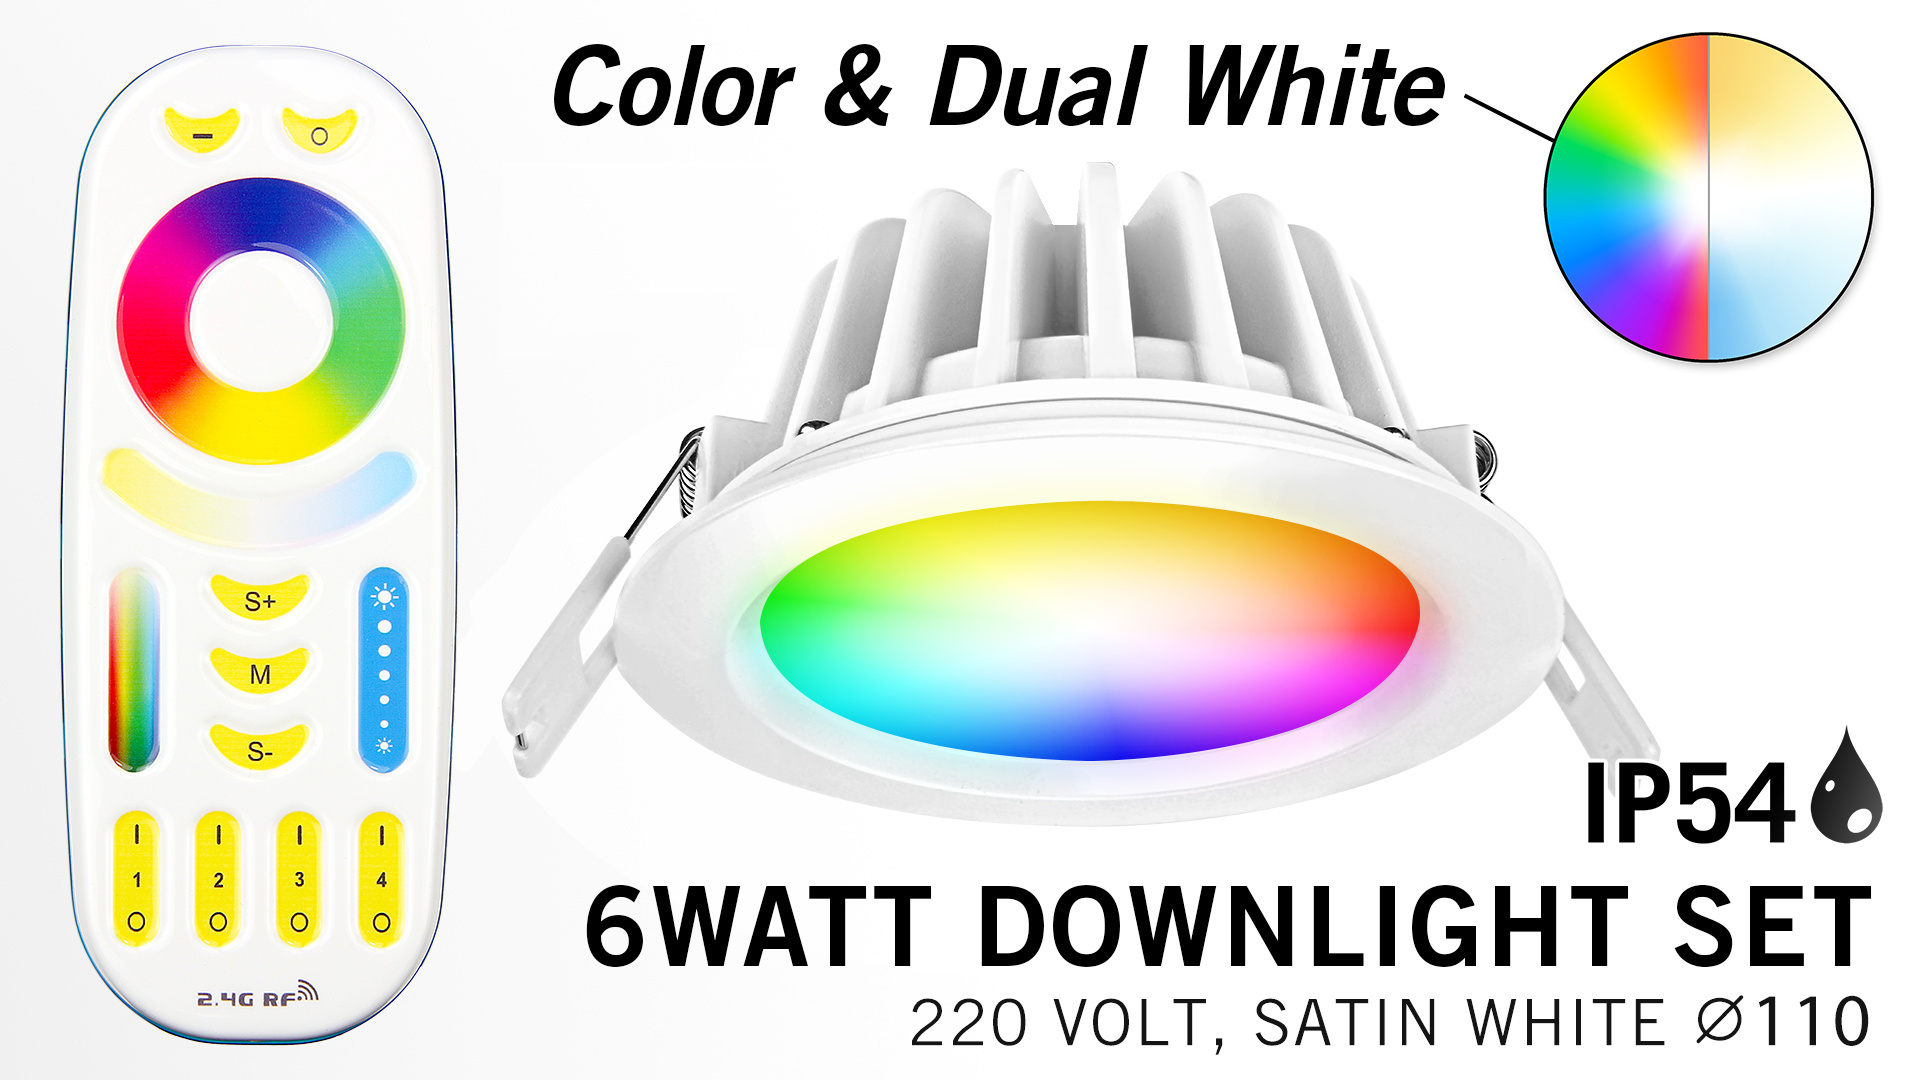 Mi-Light Set 6W waterdichte spot RGBWW Kleur + Dual White LED Inbouwspot 220V + Afstandbediening.  IP65  Ø108mm